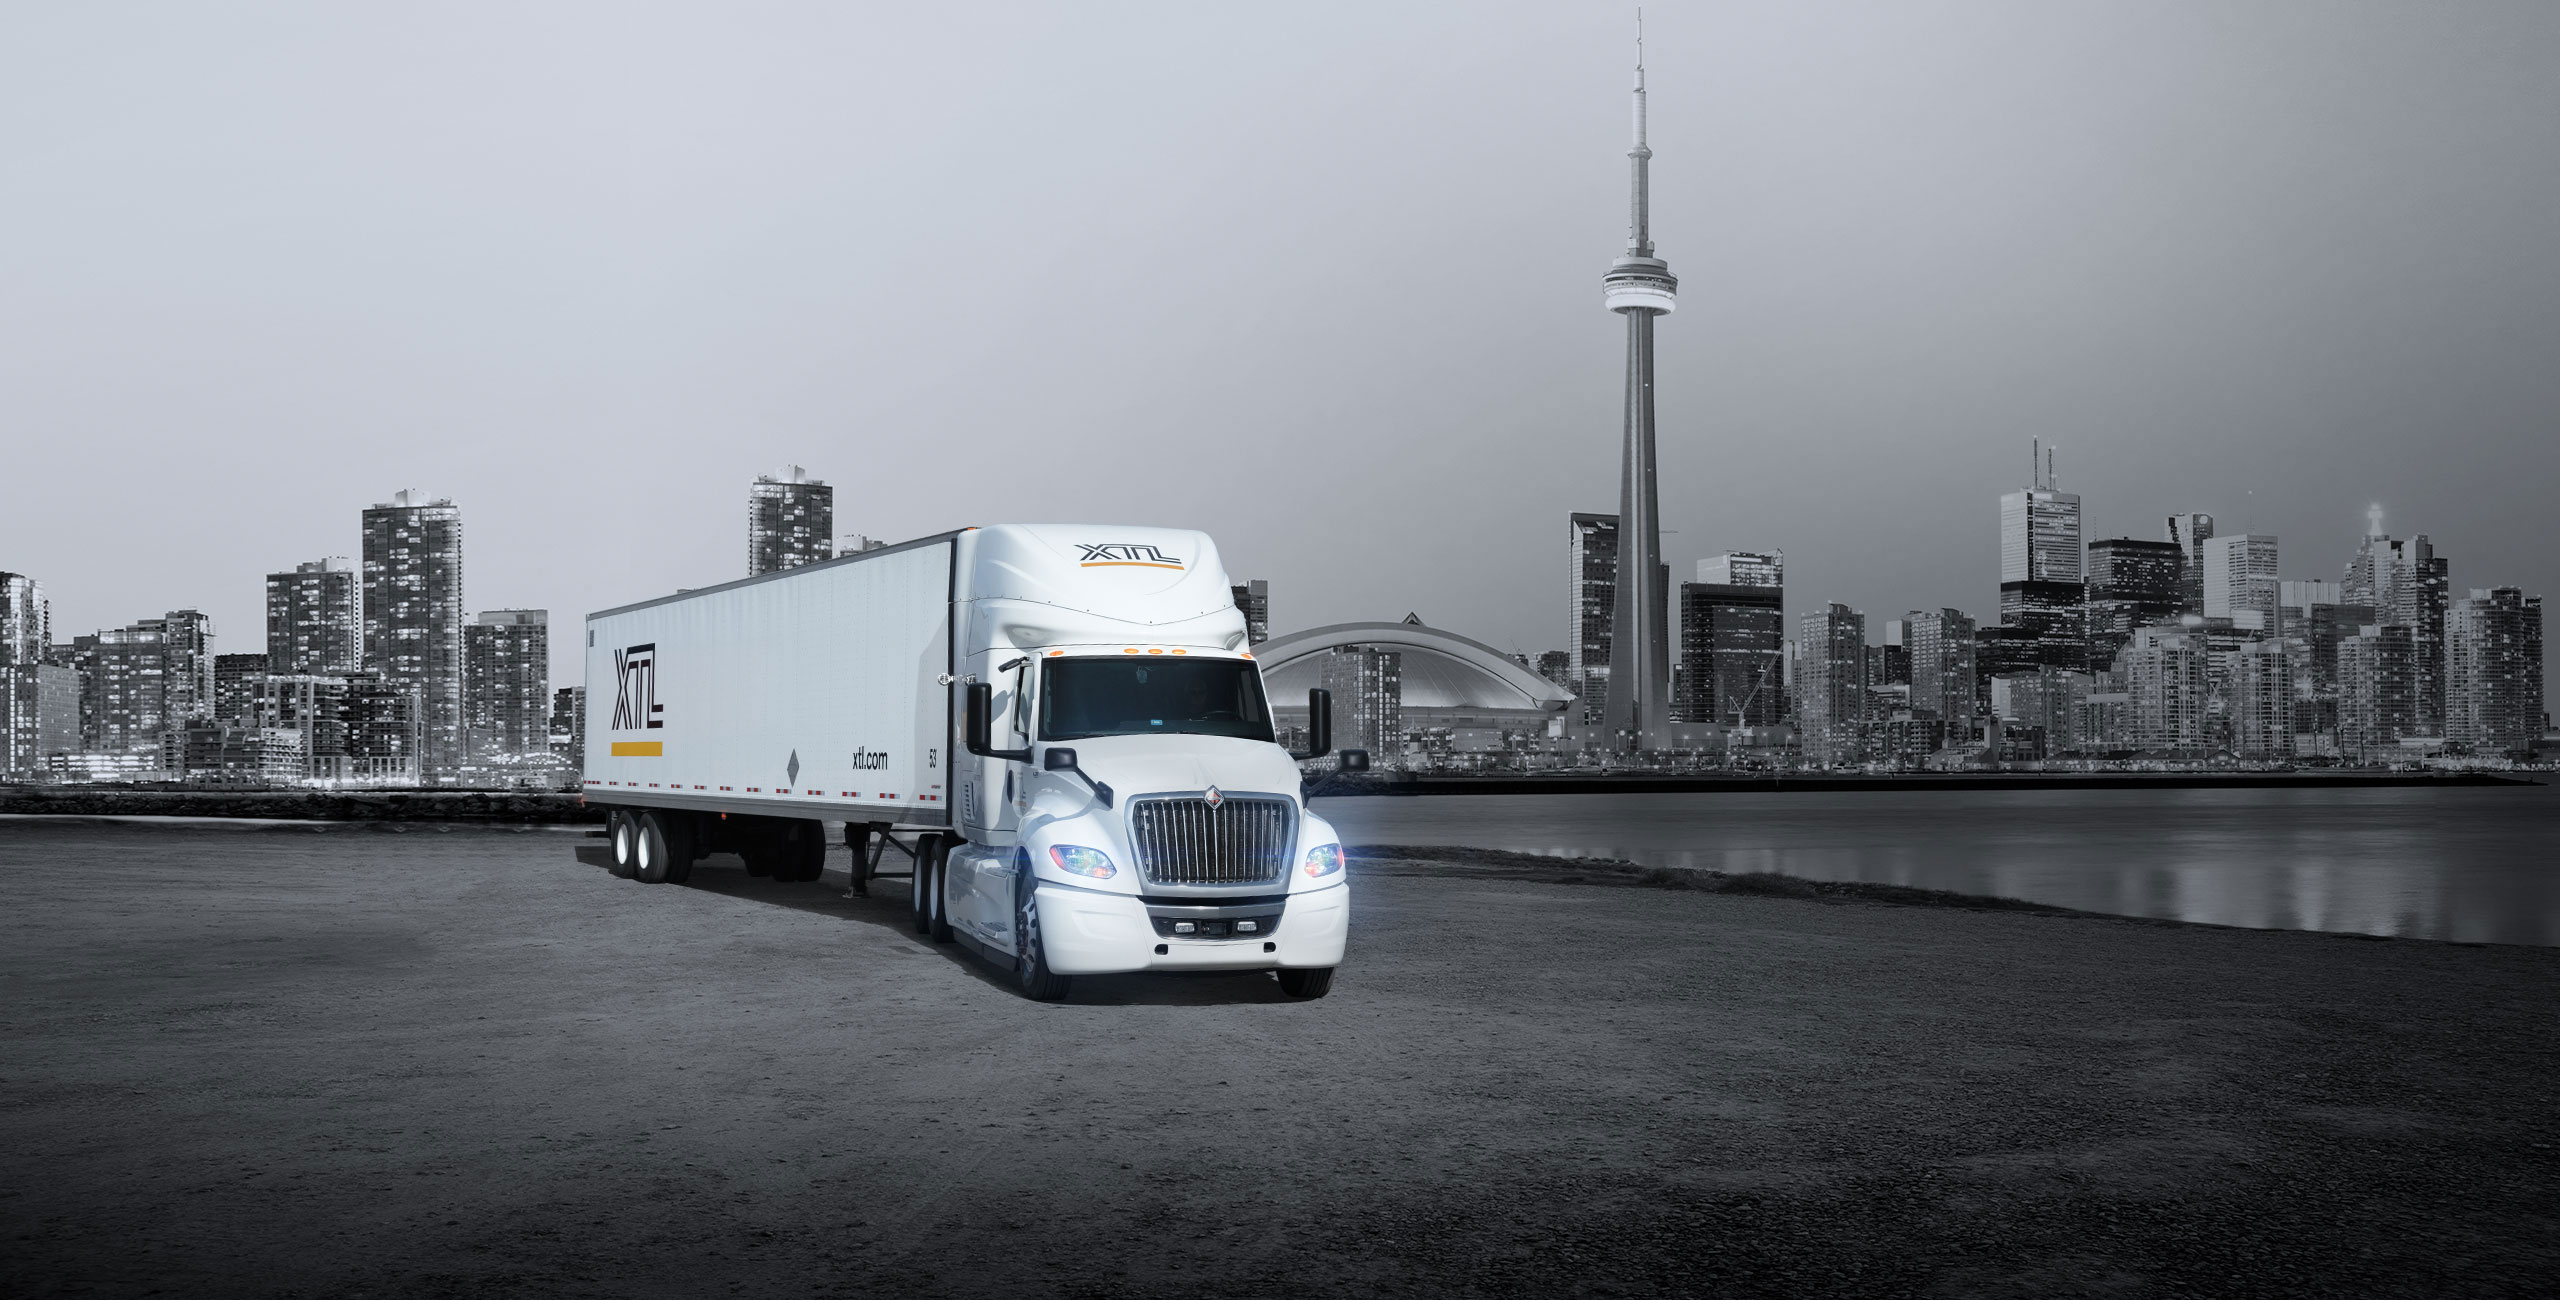 XTL transport truck parked, with city of Toronto in the background